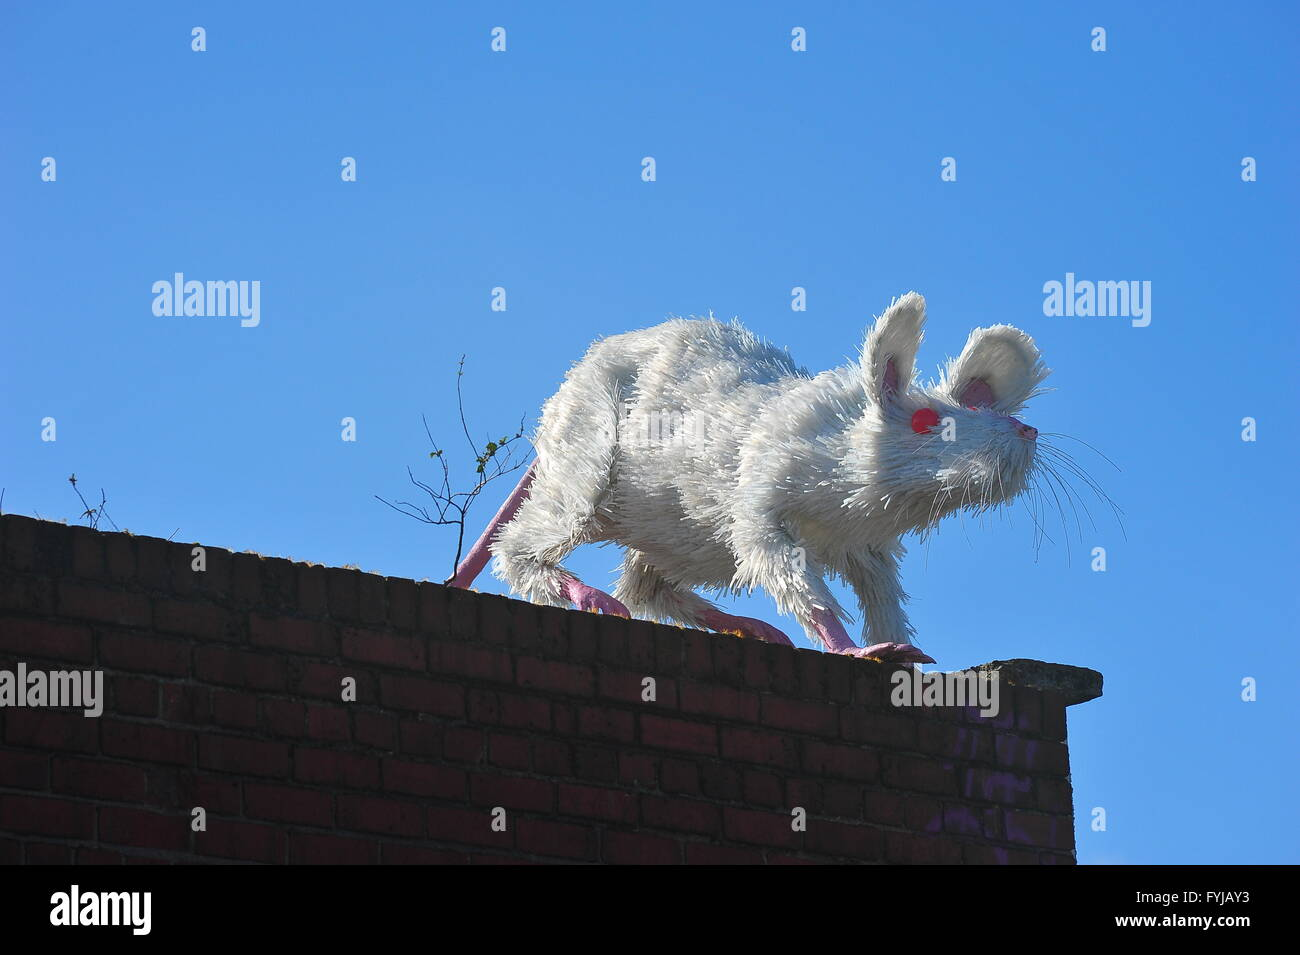 Giant white rat made from recycled plastic bottles on display in Liverpool city center. - Stock Image